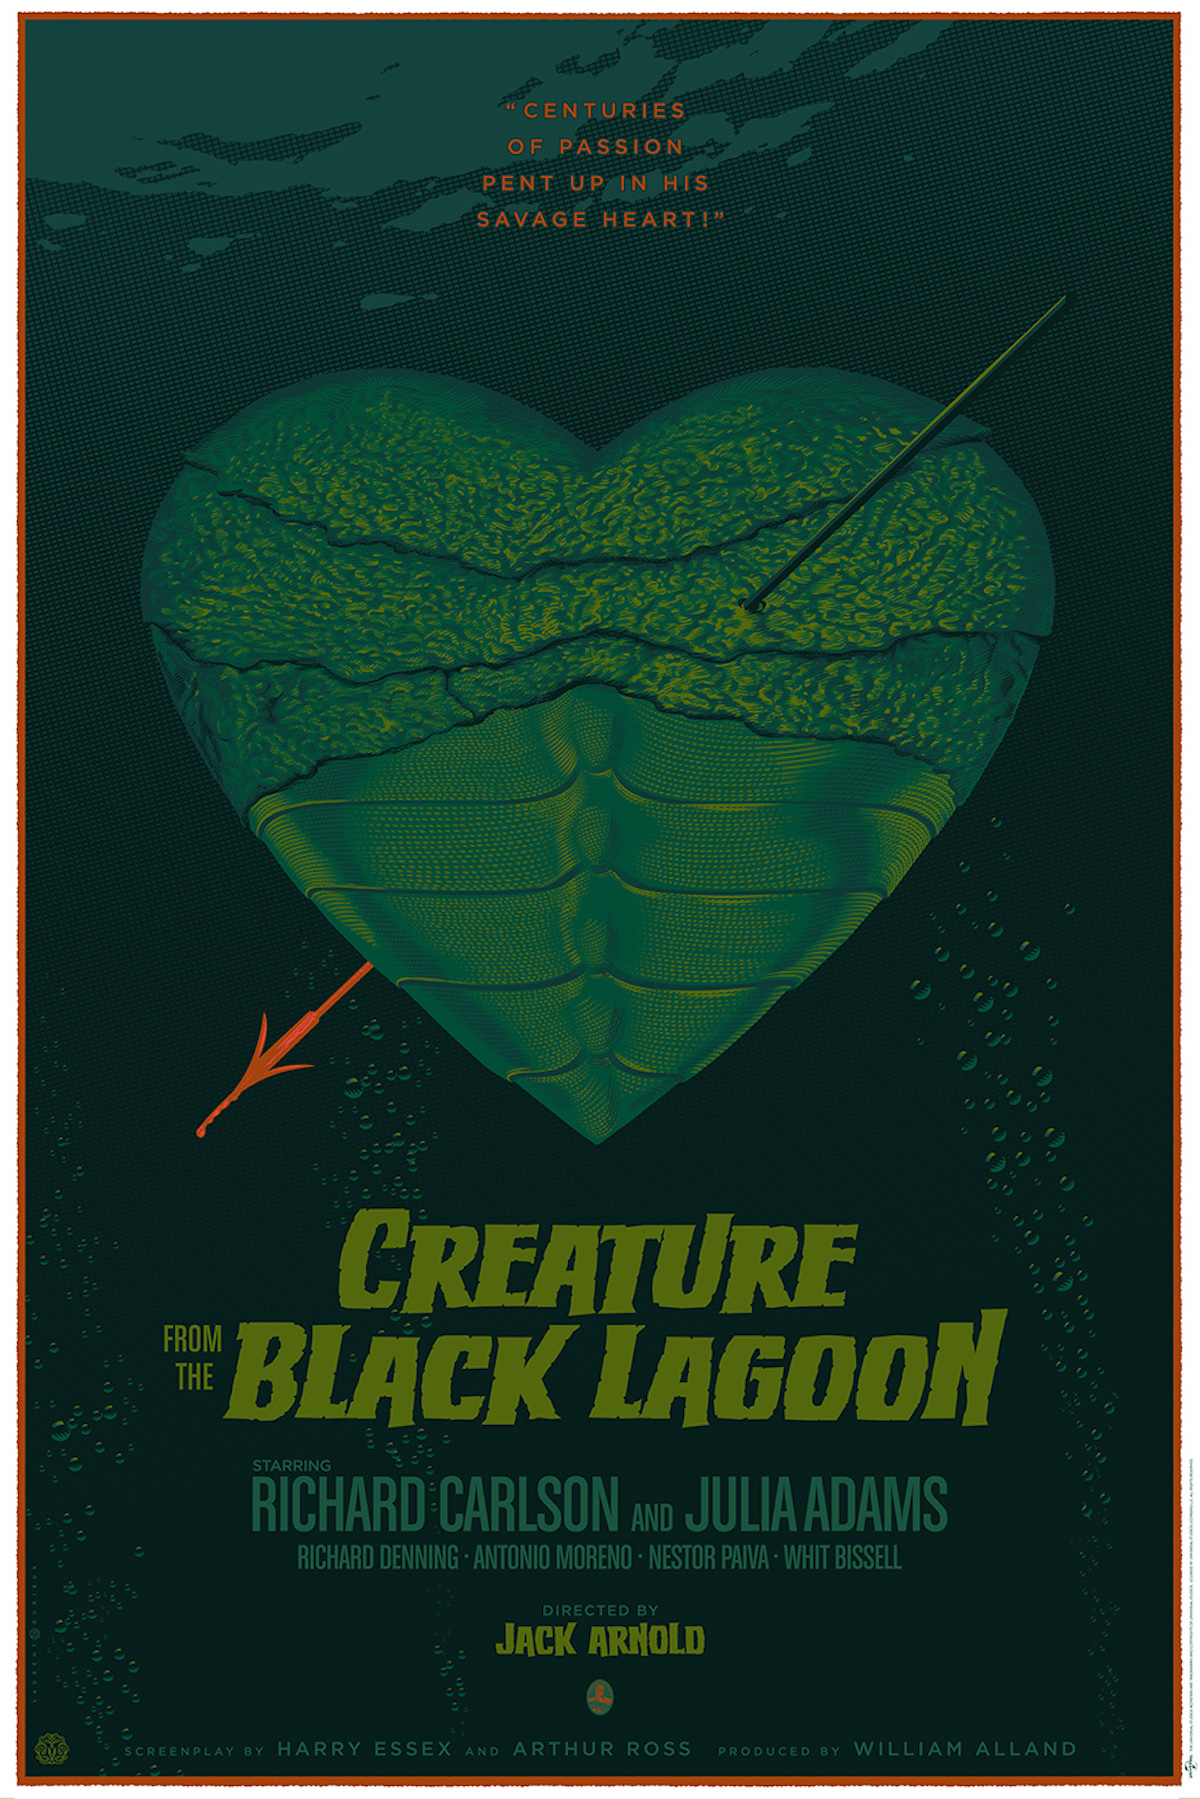 The Creature from the black lagoon Retro-Futuristic World of Laurent Durieux